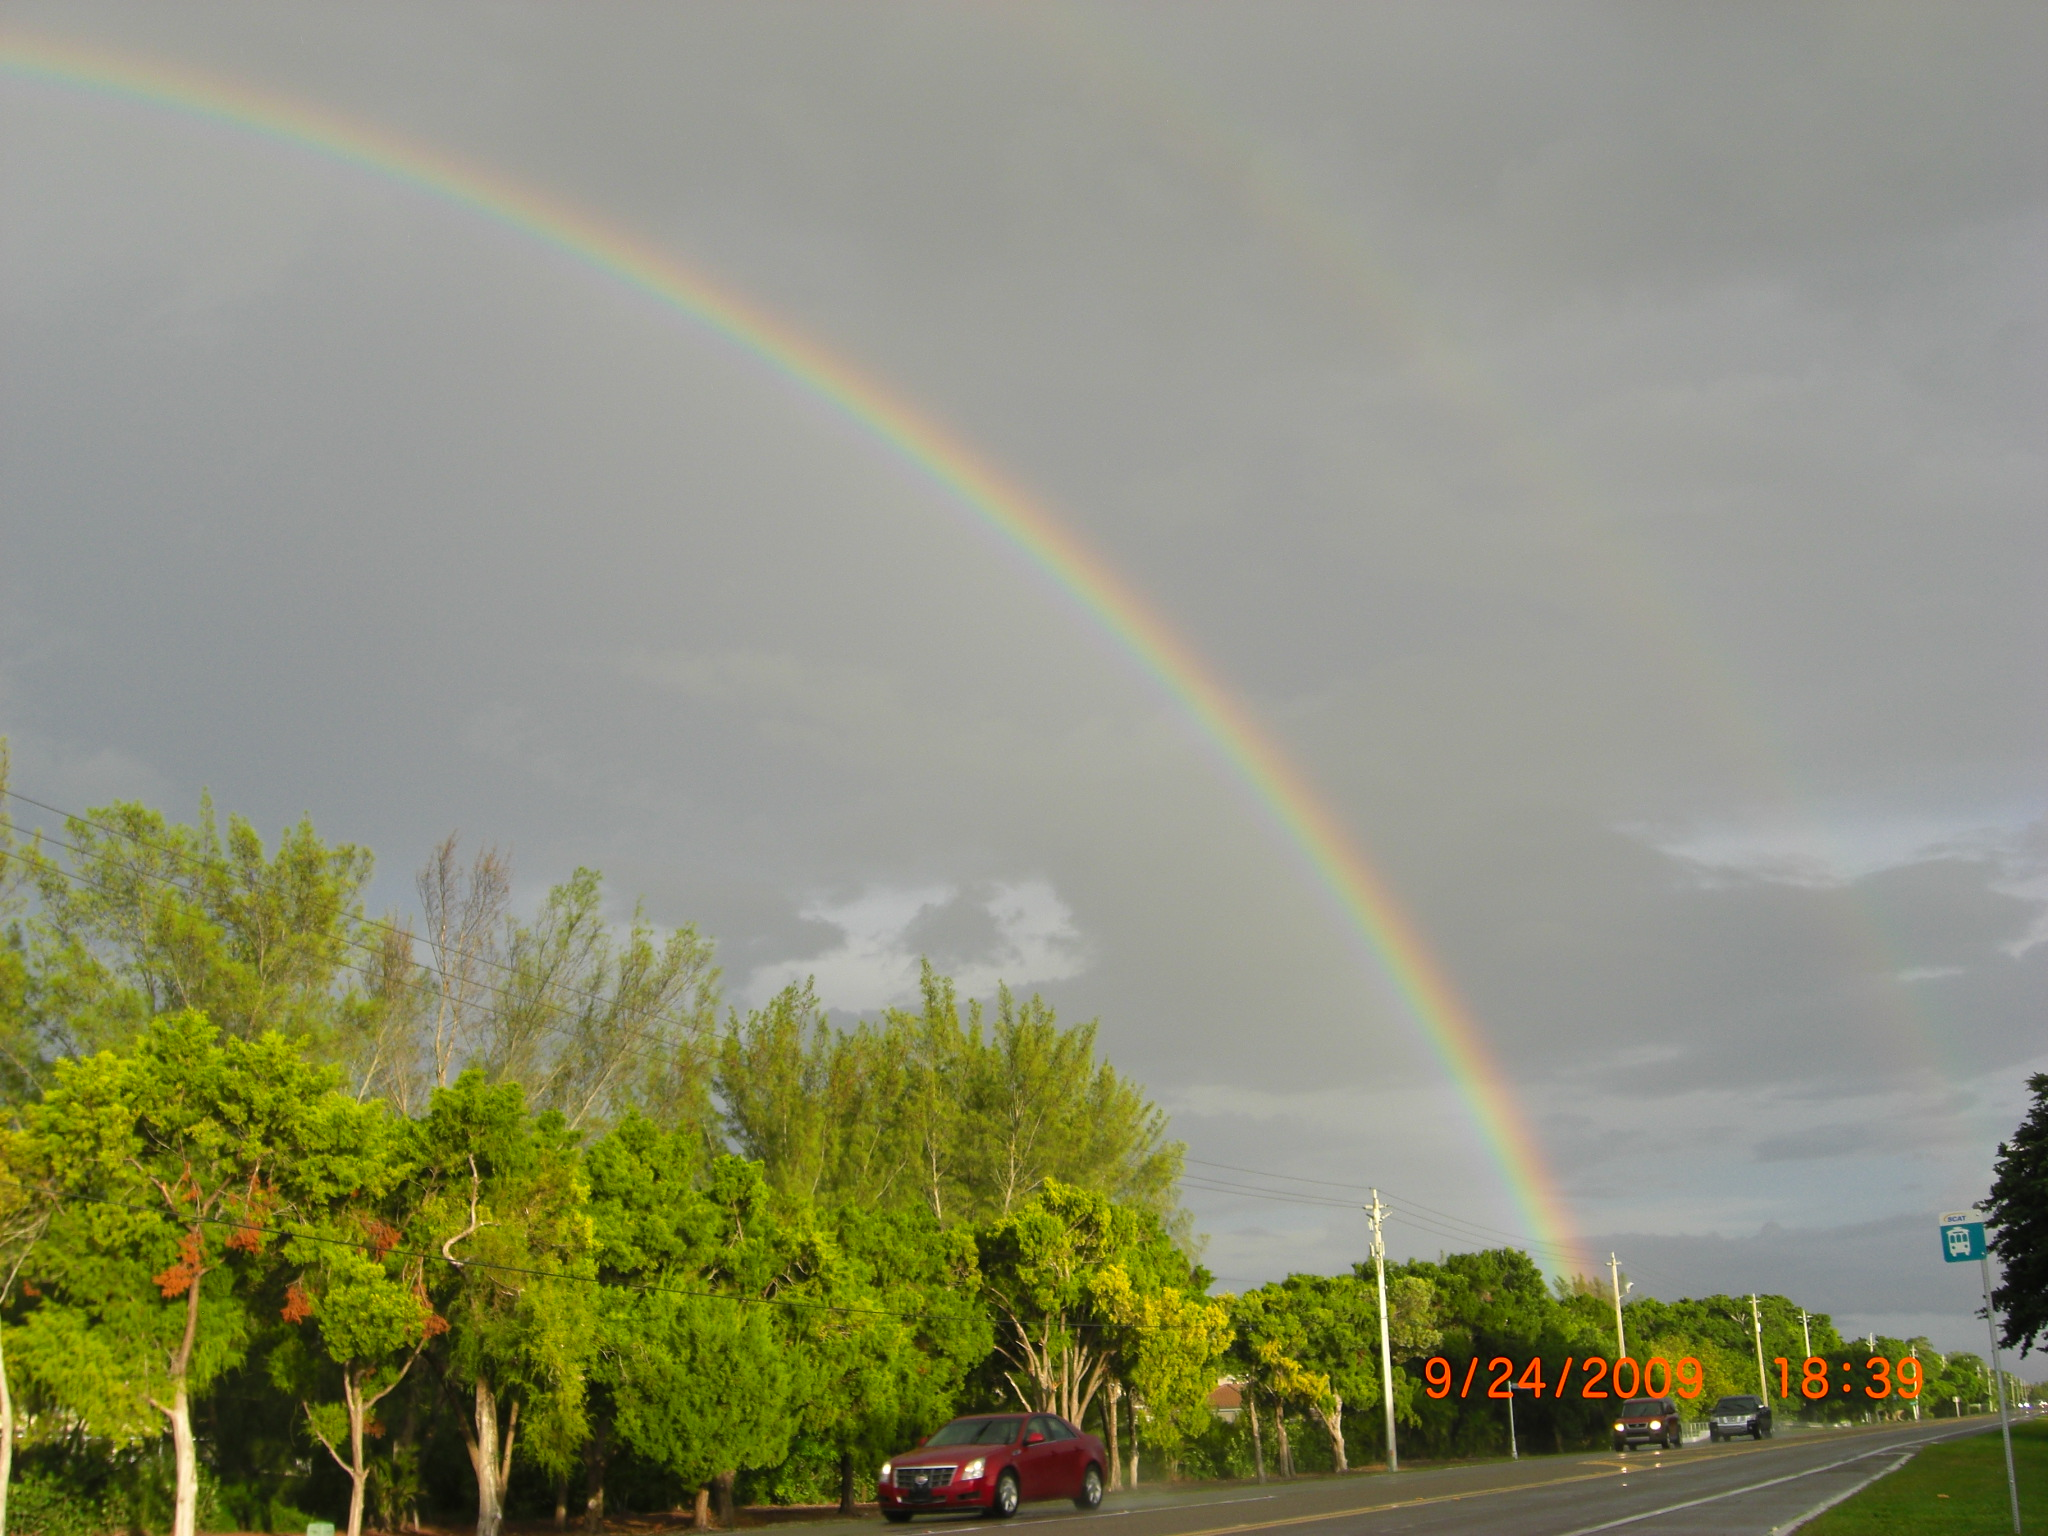 Double rainbow after a shower